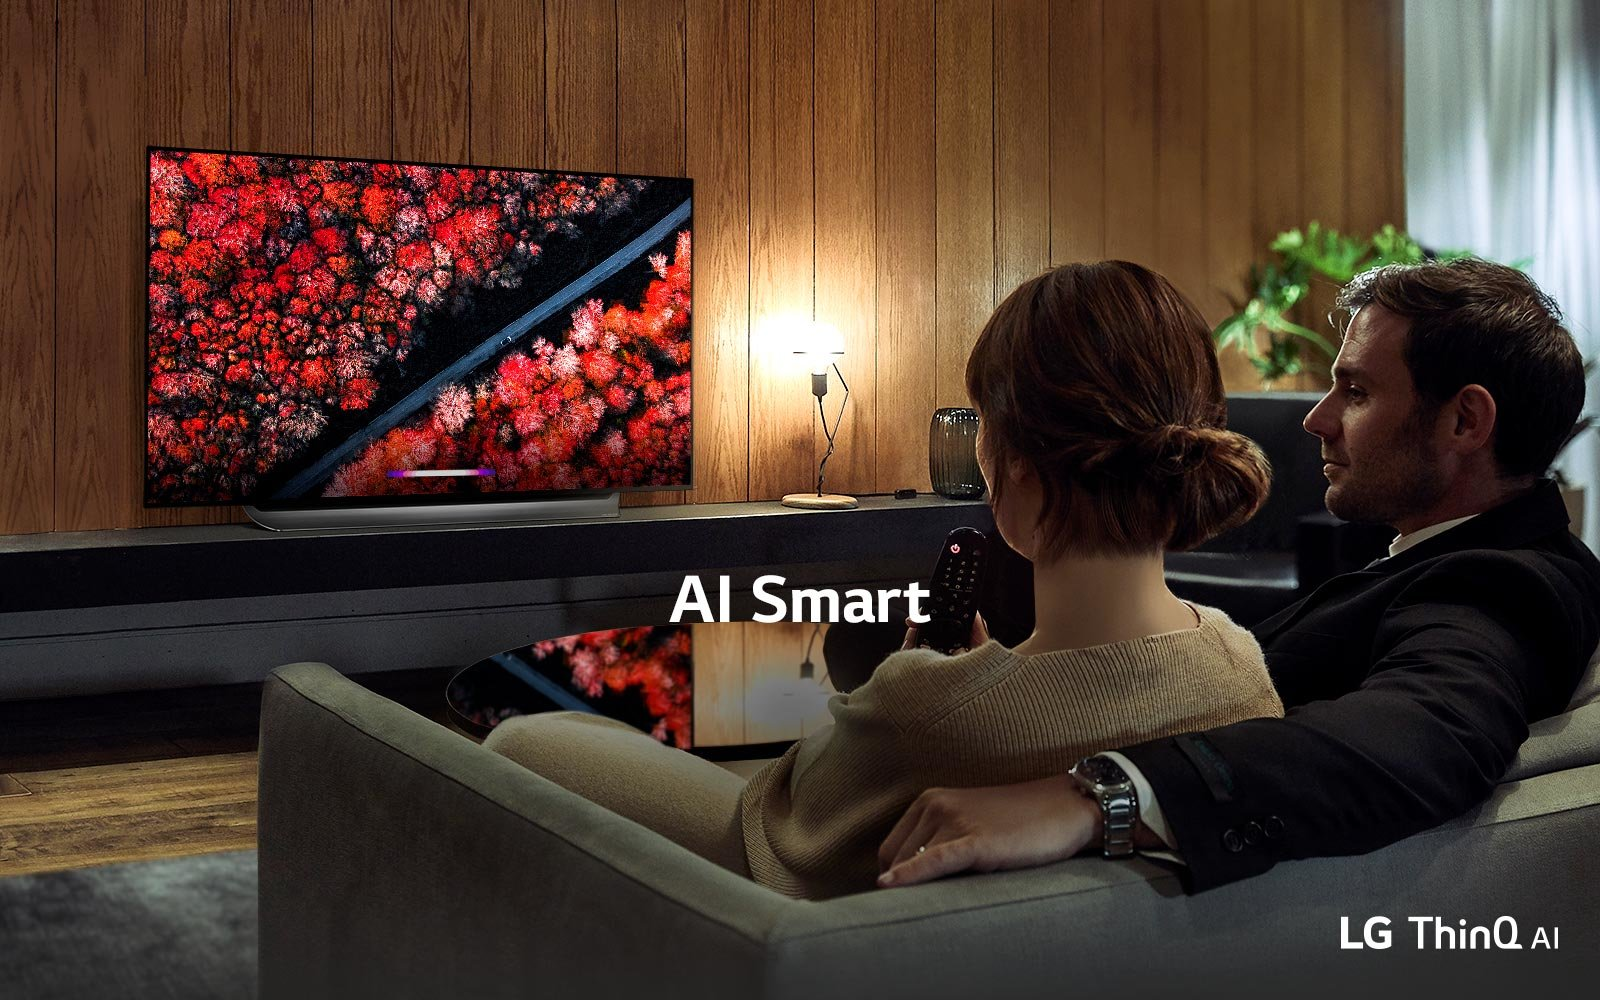 tv-oled-c9-02-ai-thinq-desktop_vv.jpg